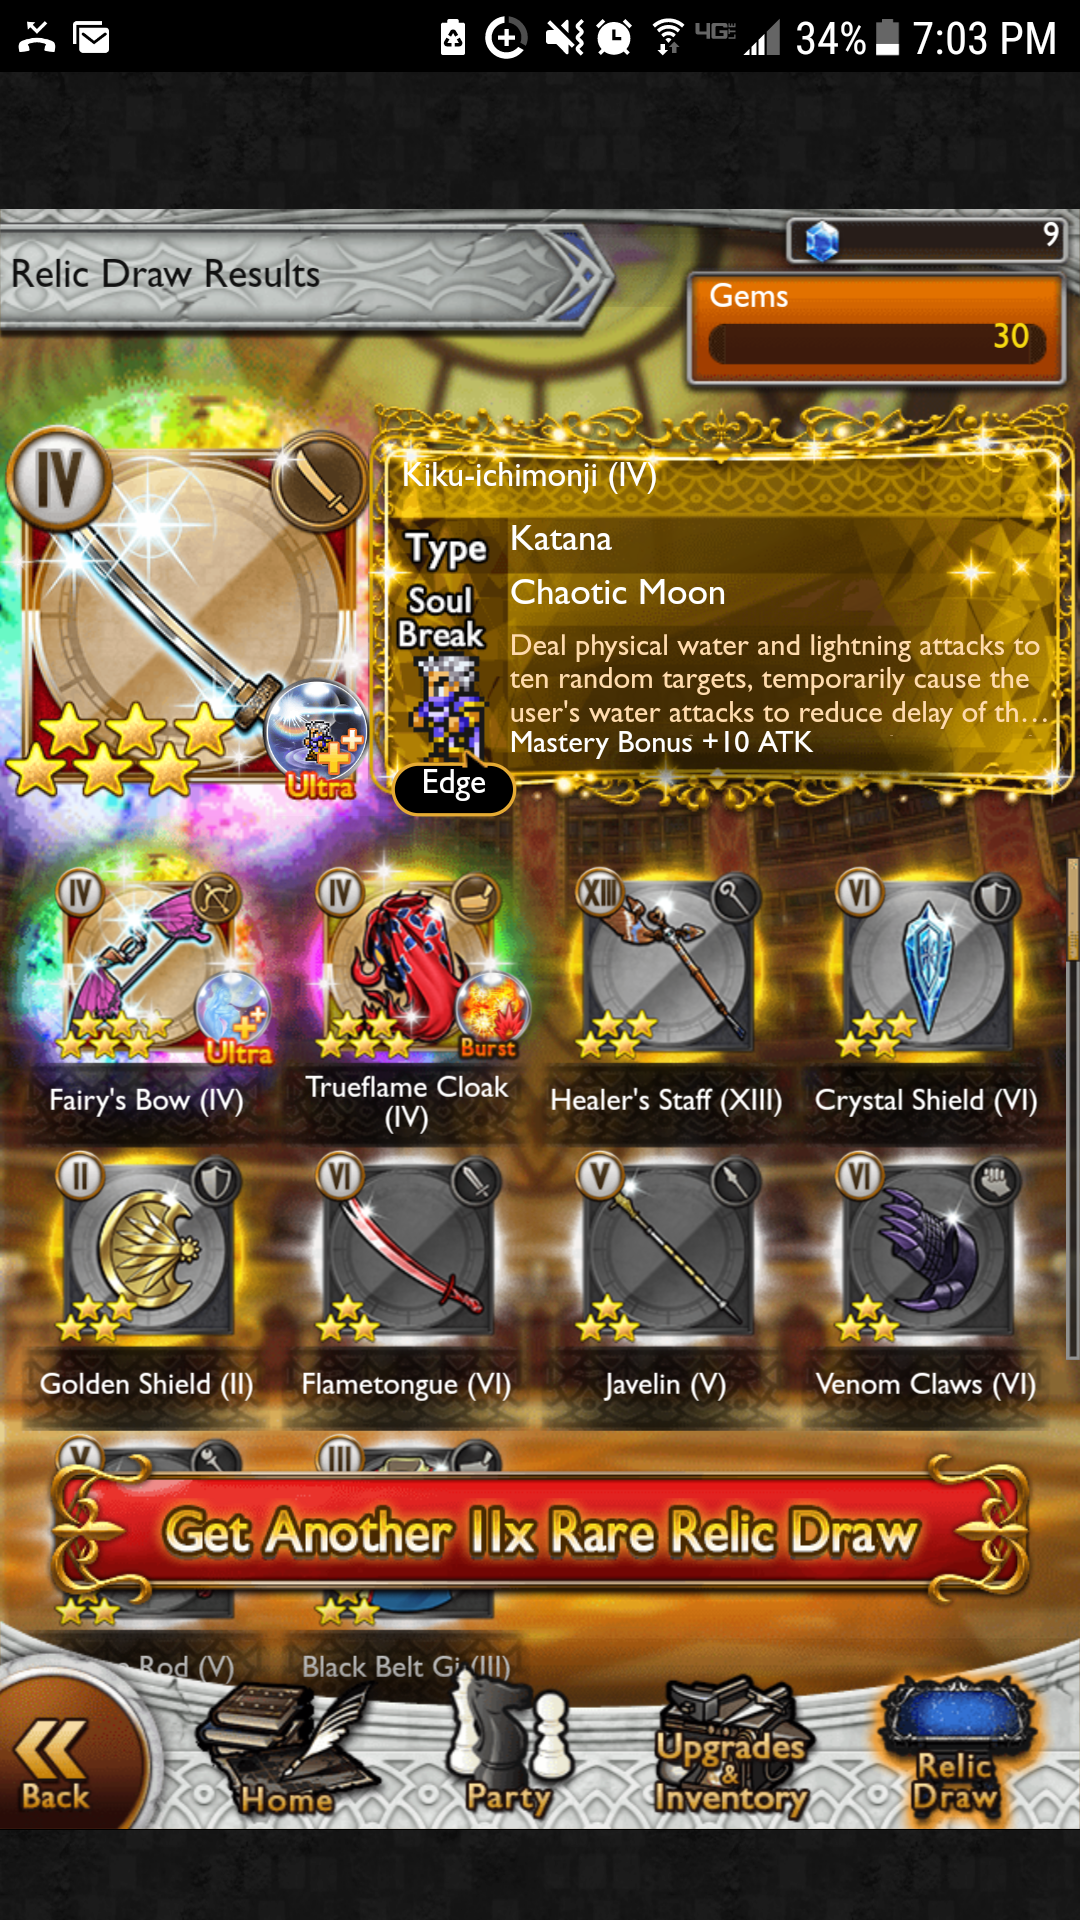 hada games cloud dupe usb2 sephiroth vincent 211 lmr2 thats thread bsb2 111 dorp 311 atk wrong alt1 whiffed aiming nice alt2 lmr1 just vincents mythril enough missed pull ffvii last wish picked rata thought gets since ffrk fine 411